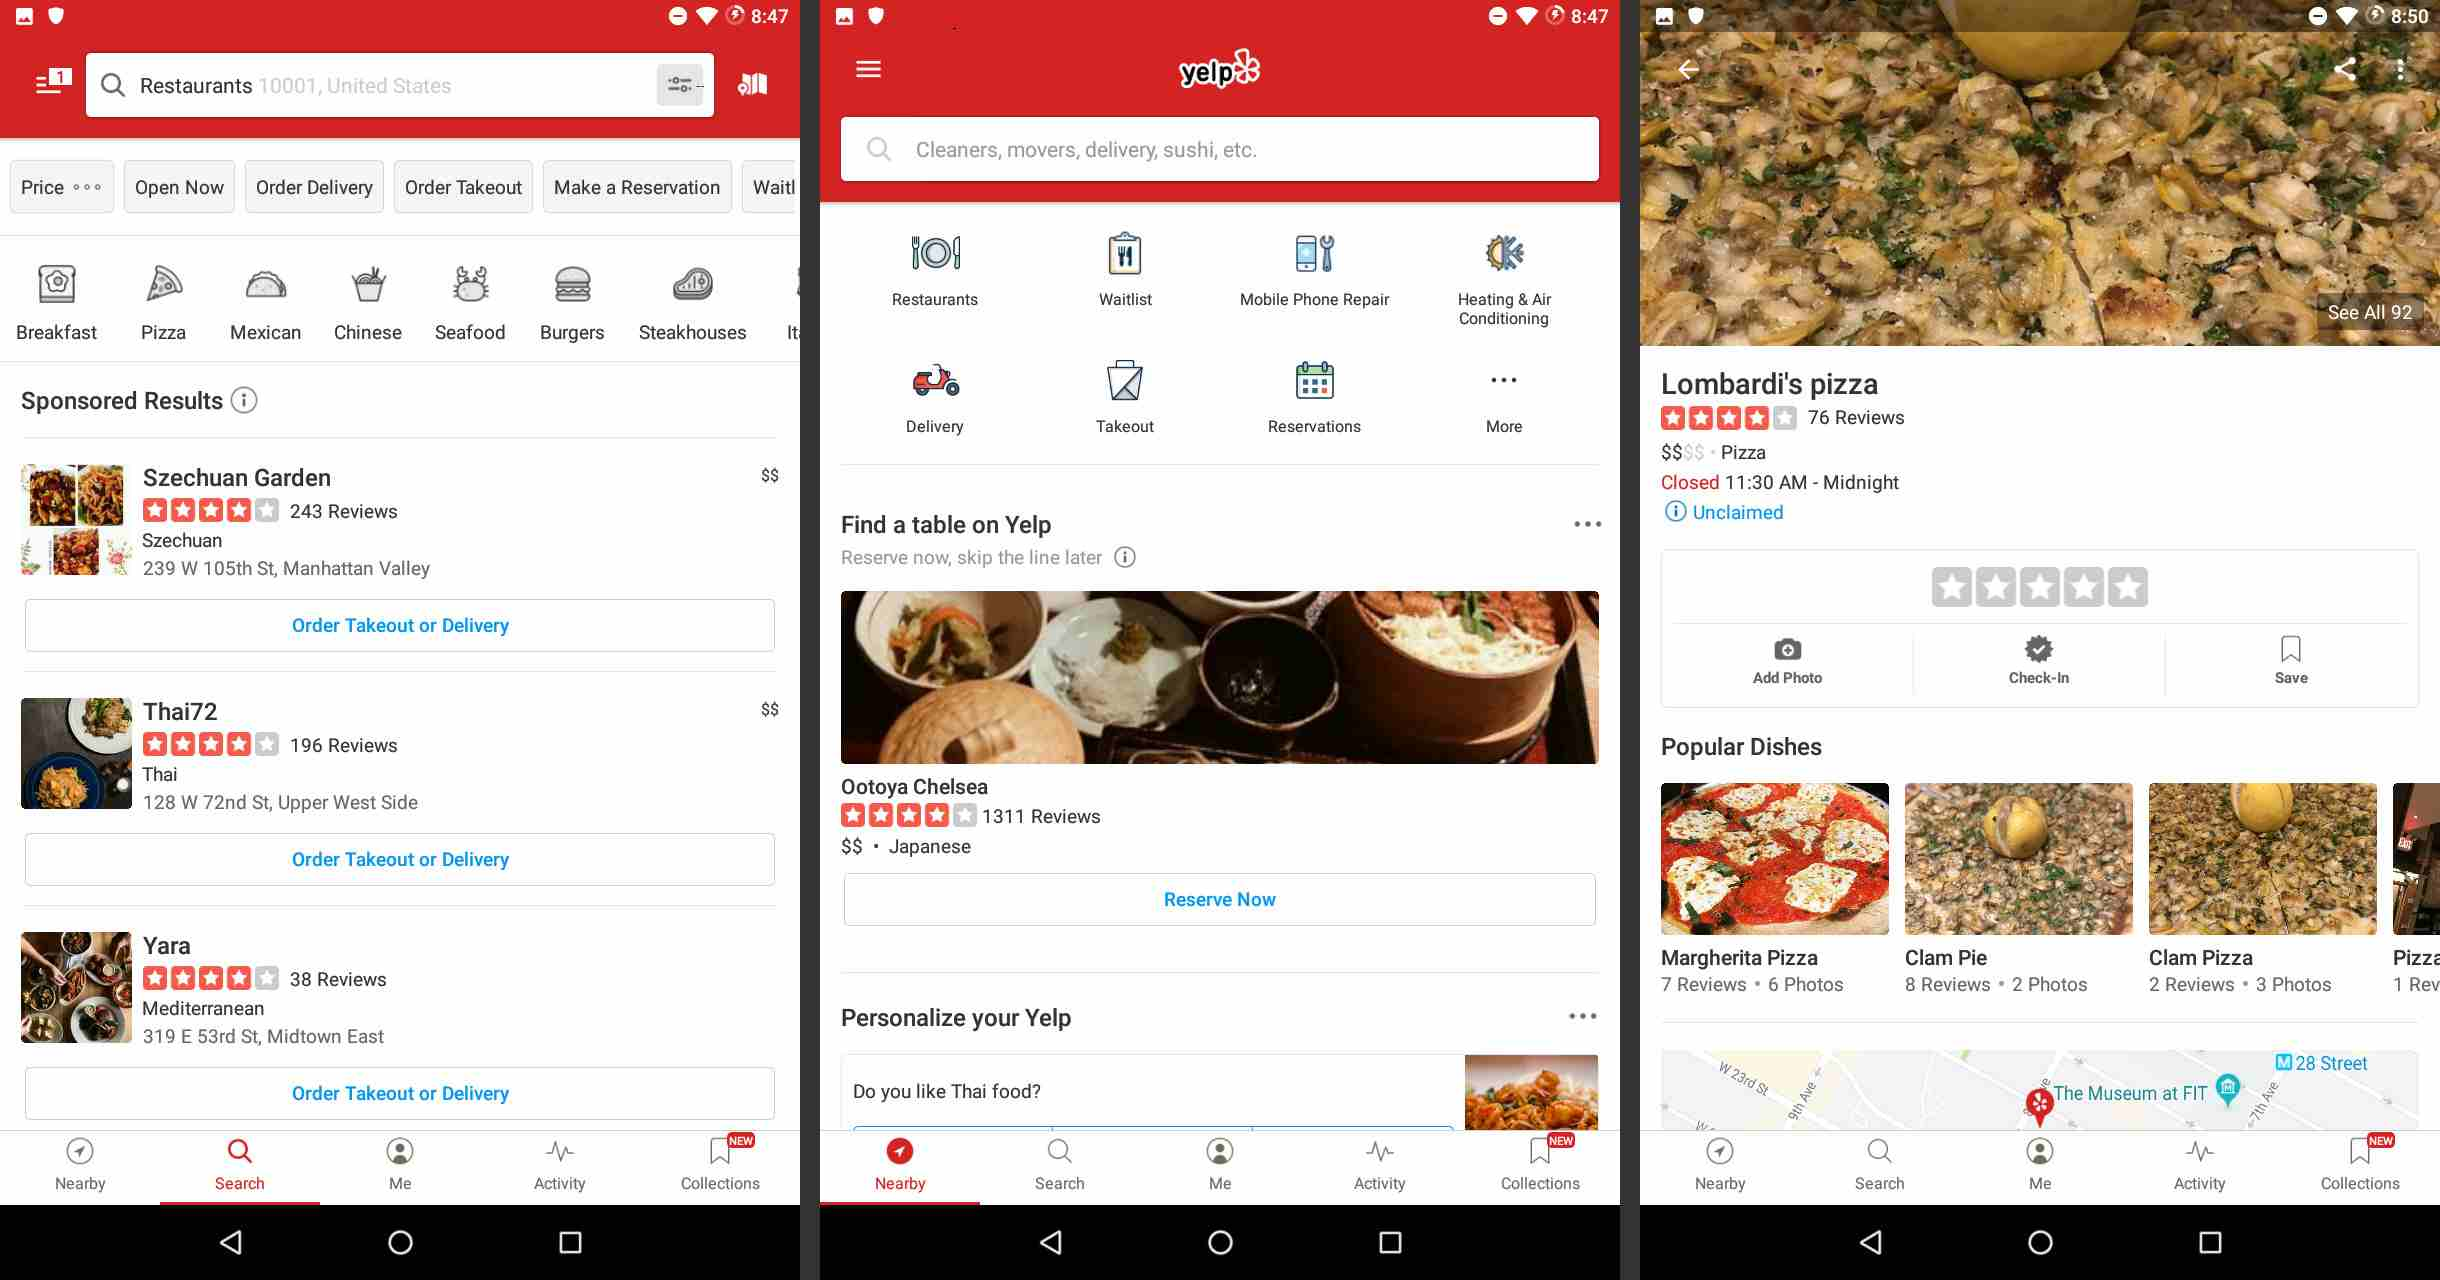 The 5 Best Android Food and Restaurant Apps